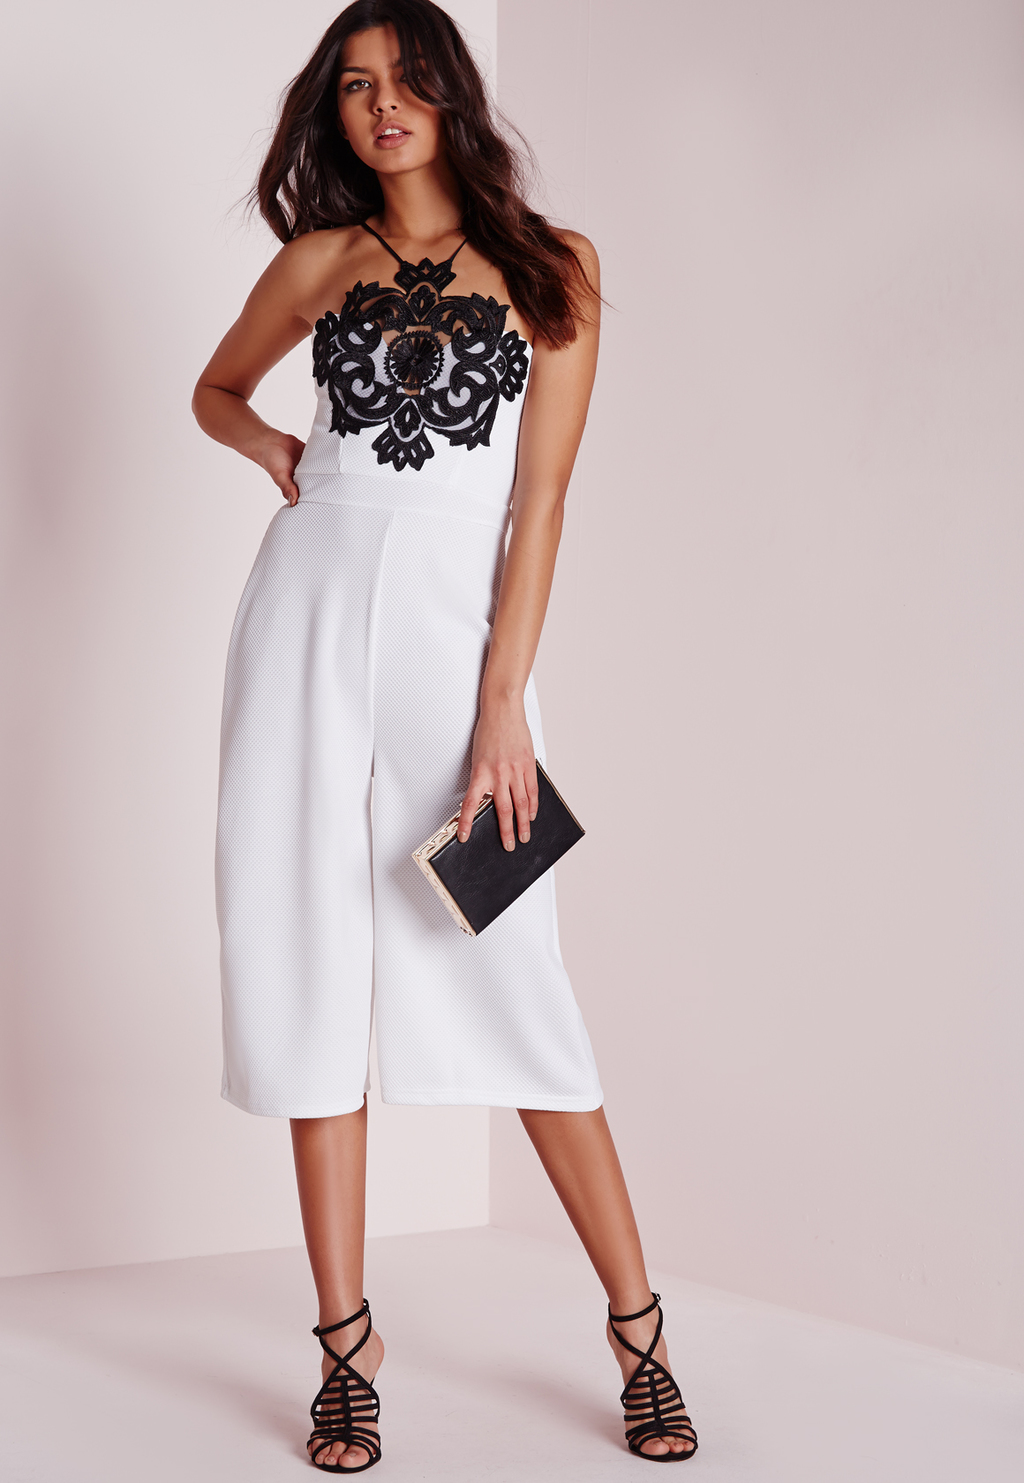 Lace Trim Stappy Culotte Jumpsuit Monochrome, Black - sleeve style: sleeveless; neckline: low halter neck; secondary colour: white; predominant colour: black; length: calf length; fit: fitted at waist & bust; fibres: polyester/polyamide - stretch; occasions: occasion; sleeve length: sleeveless; style: jumpsuit; pattern type: fabric; pattern: patterned/print; texture group: other - light to midweight; embellishment: lace; season: a/w 2015; wardrobe: event; embellishment location: bust